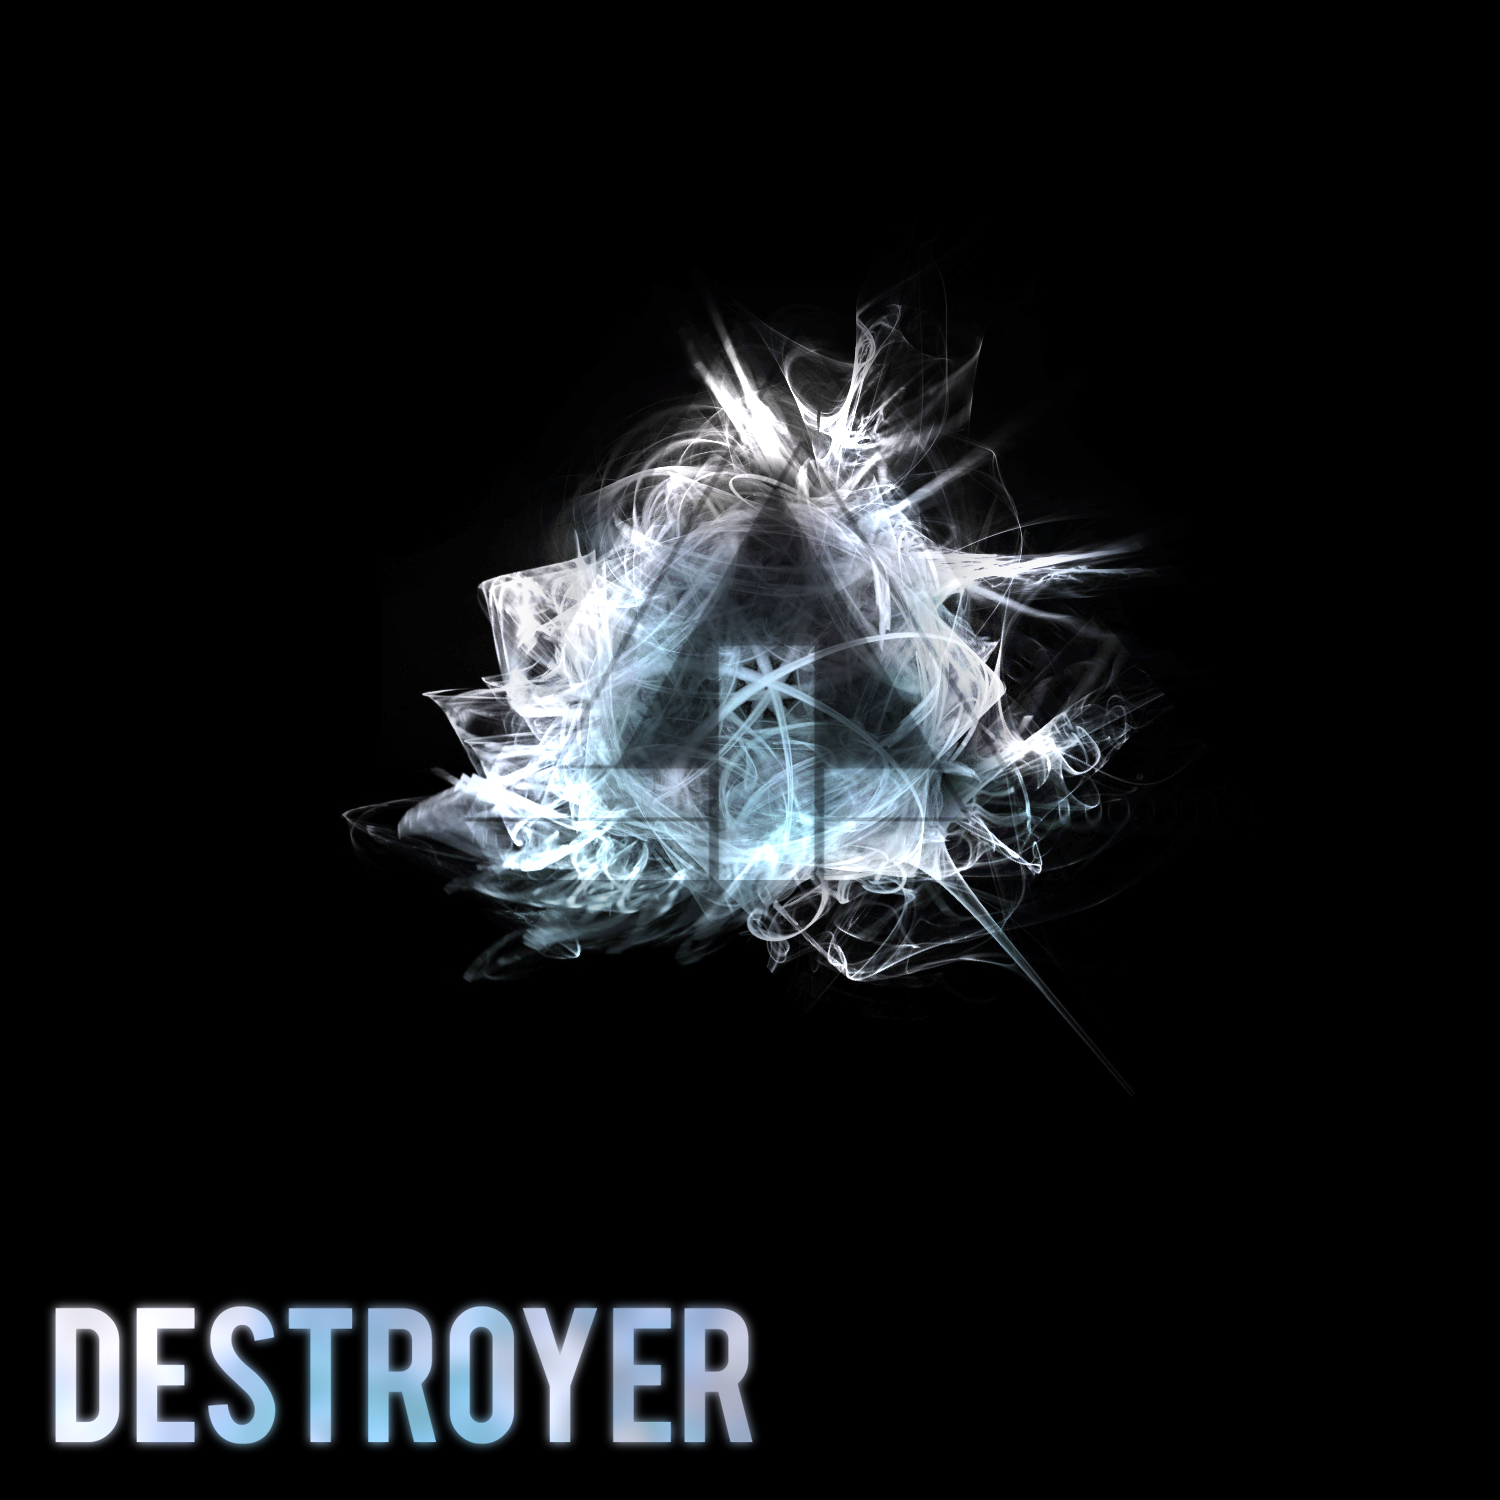 Destroyer 4A by Mird